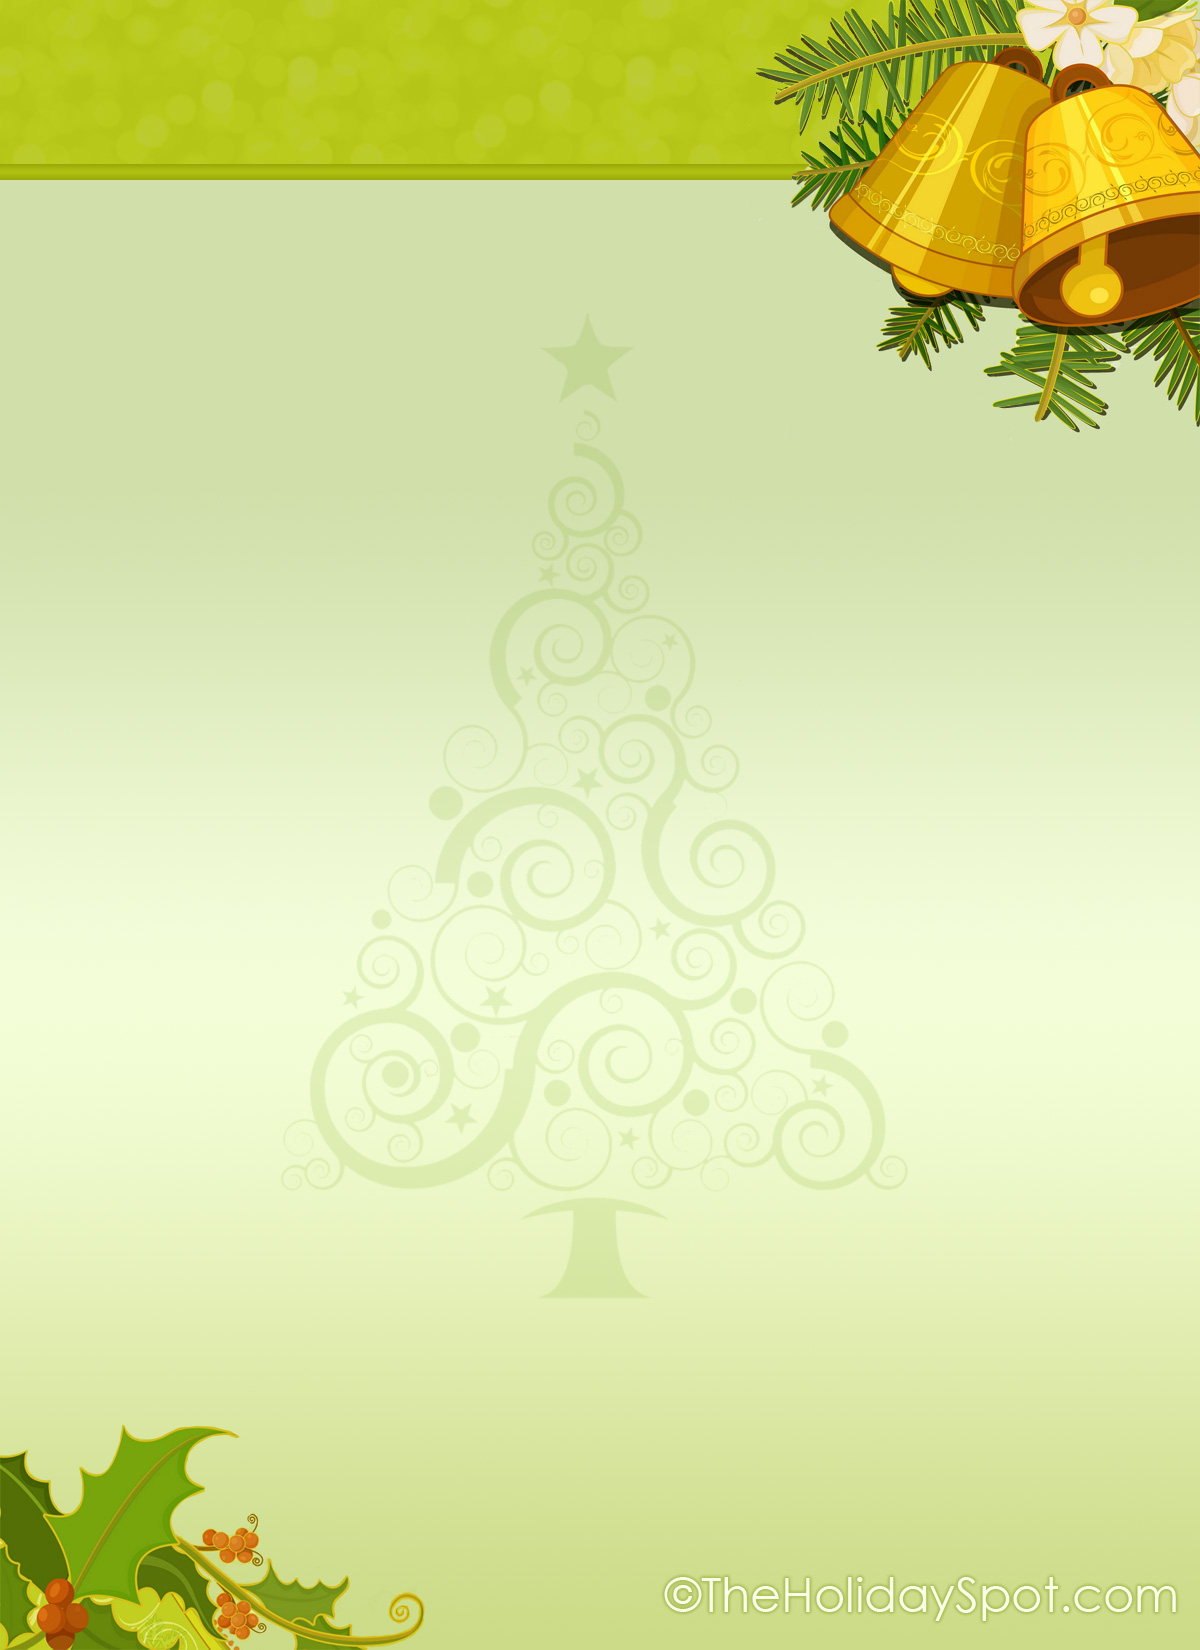 Free Christmas Letterhead Free Stationery For christmas